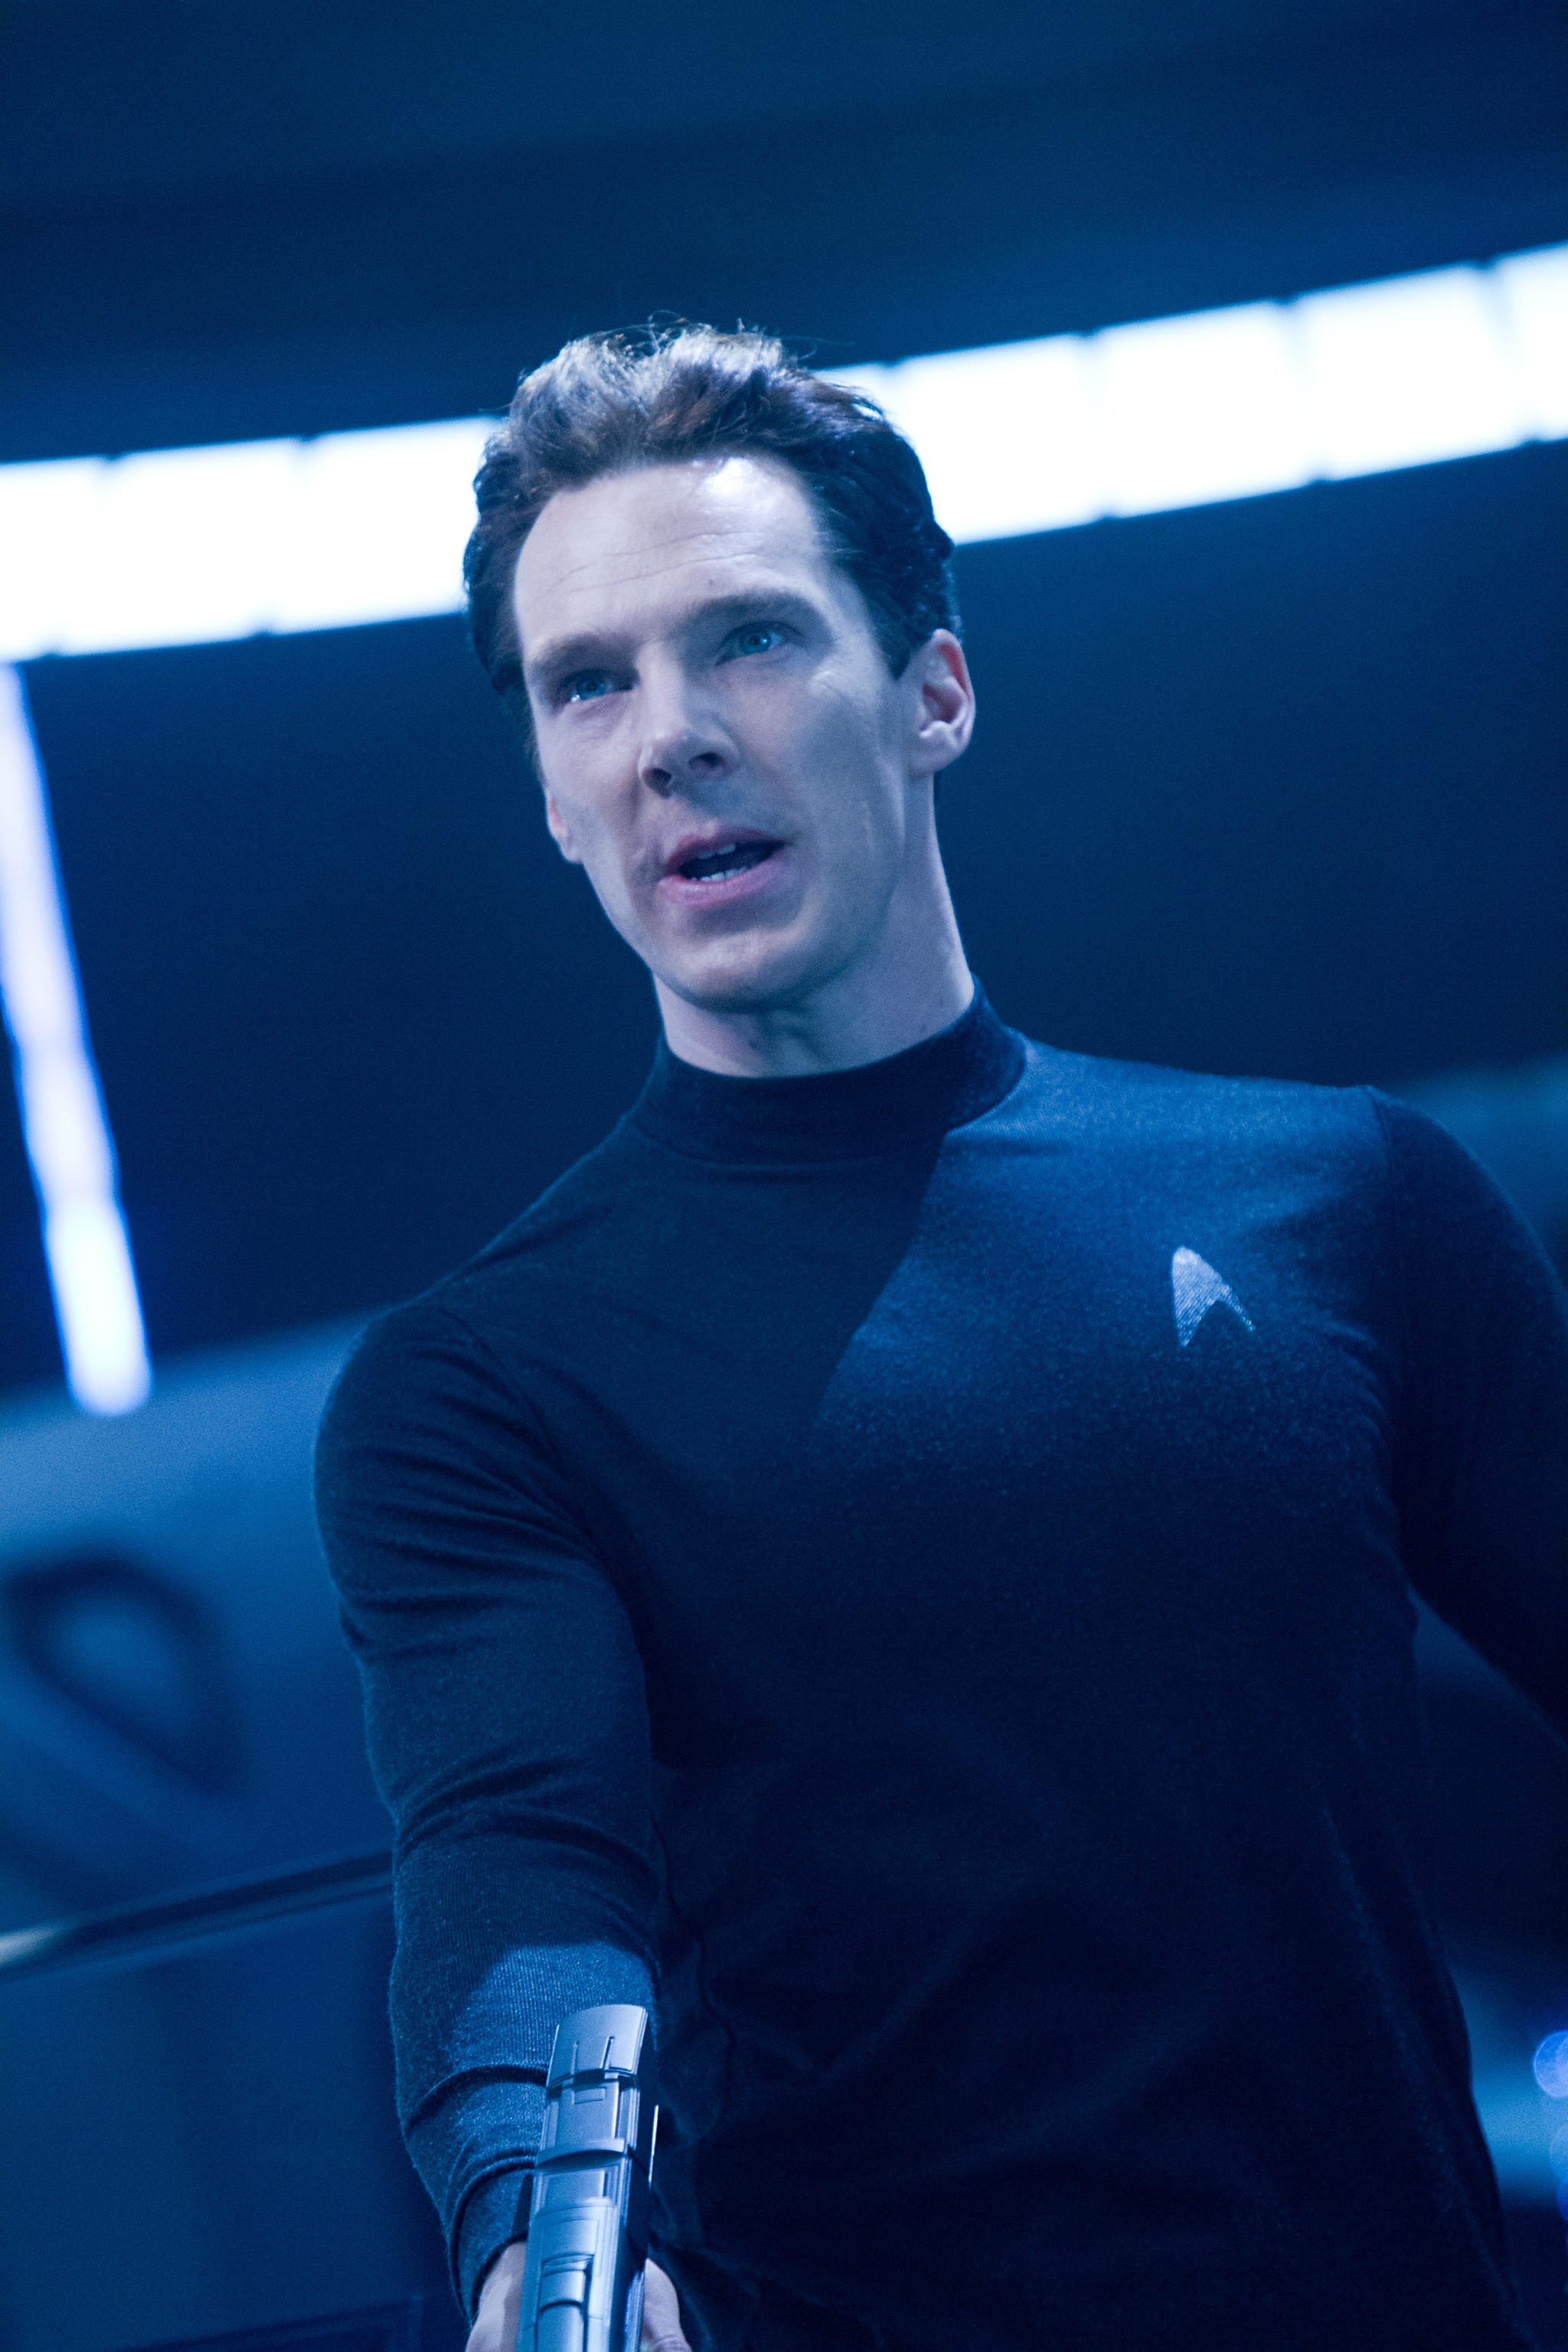 Star Trek Into Darkness Preview - Benedict Cumberbath (John Harrison)